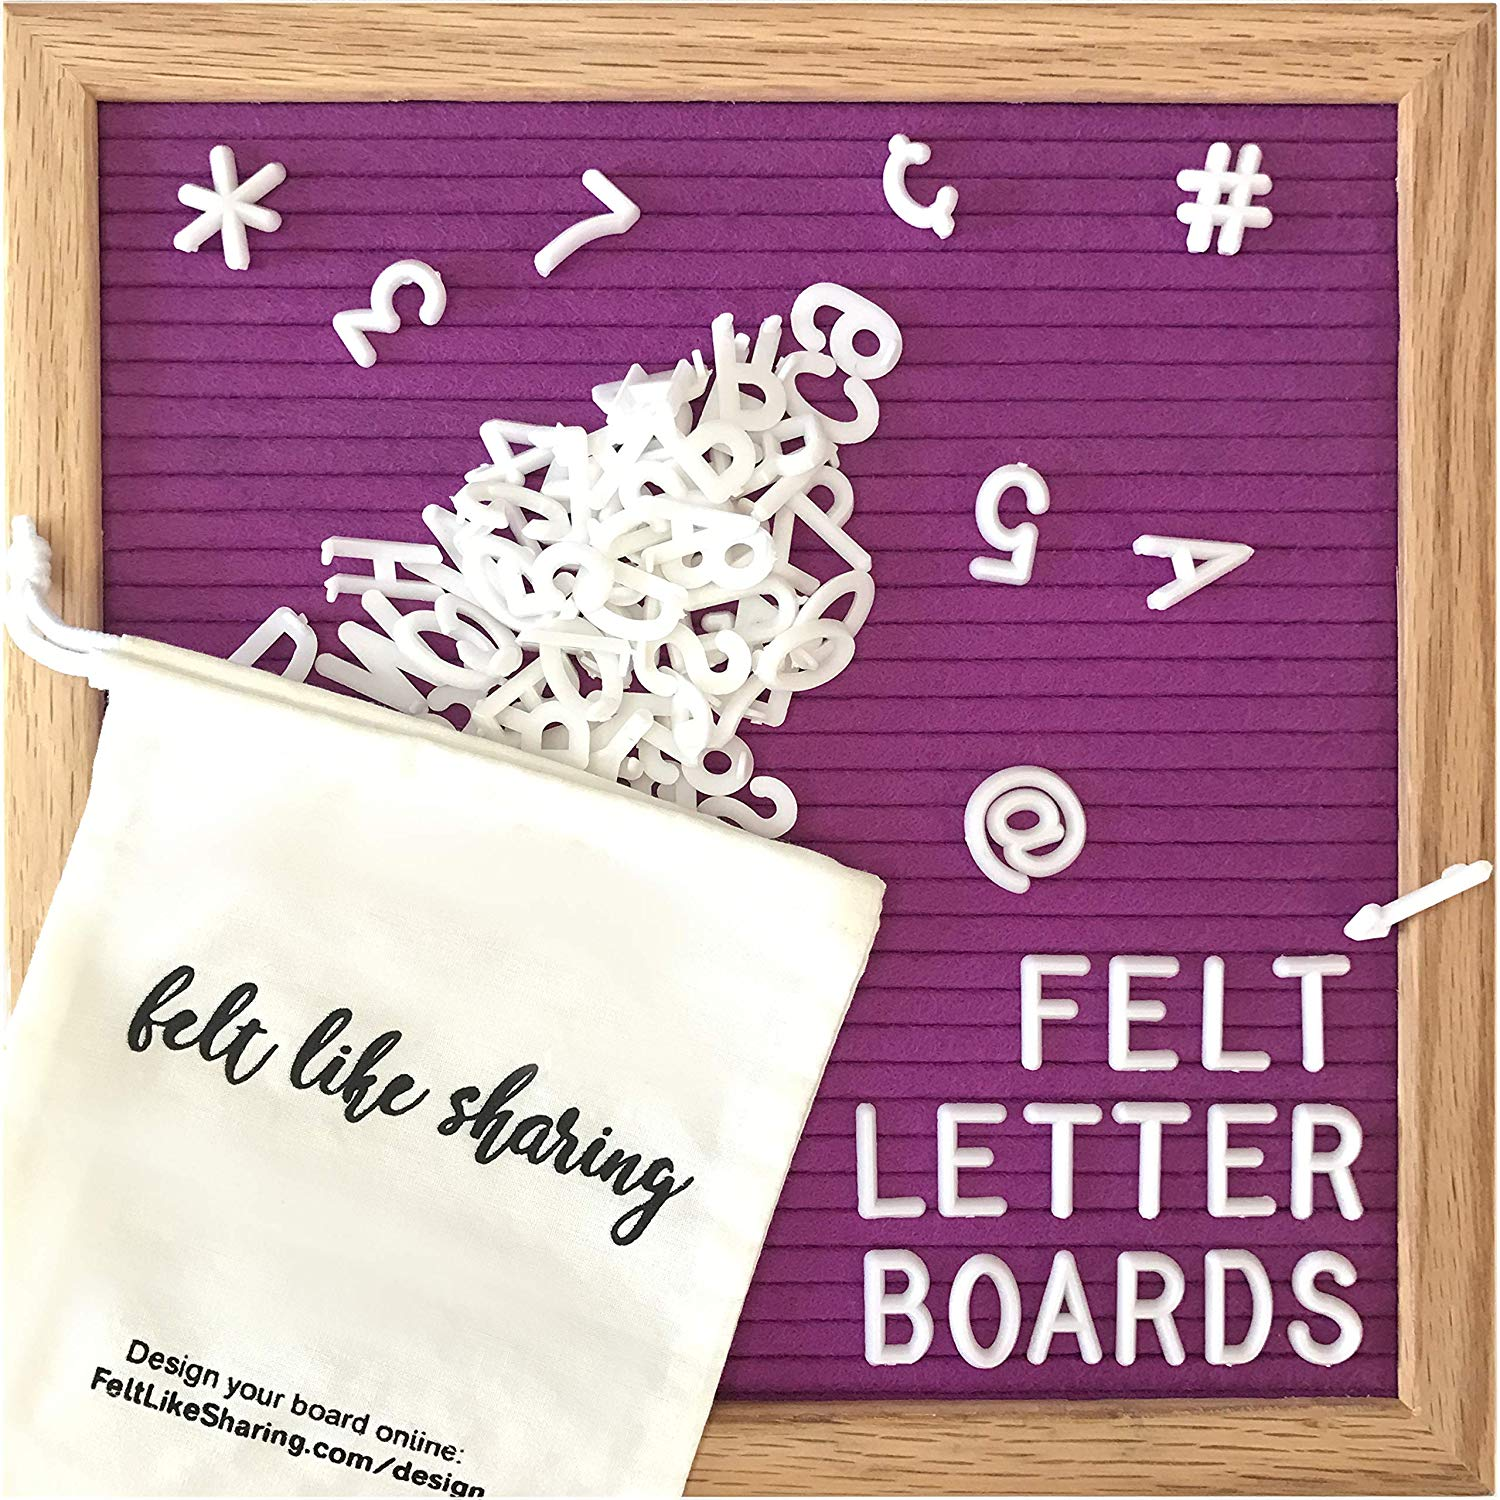 Drawing Board Felt Letter Board Message Board Bulletin Board Home Office Decor Oak Frame White Letters Symbols Numbers Characters Bag Let Our Commodities Go To The World Office & School Supplies